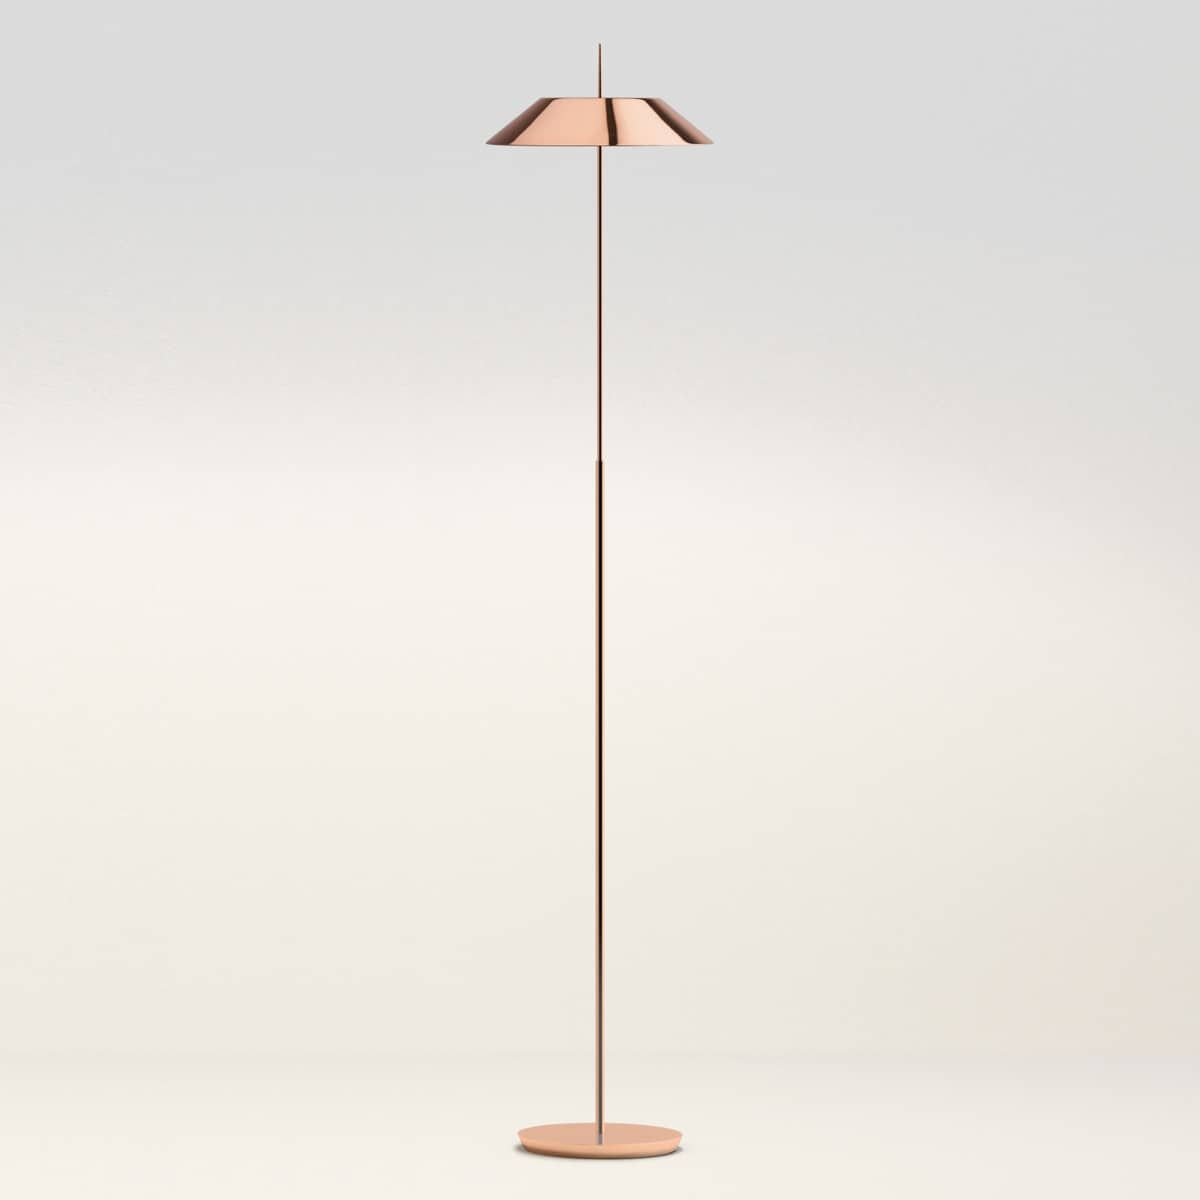 Vibia Mayfair 5515 Stehleuchte Kupfer Glanzend In 2020